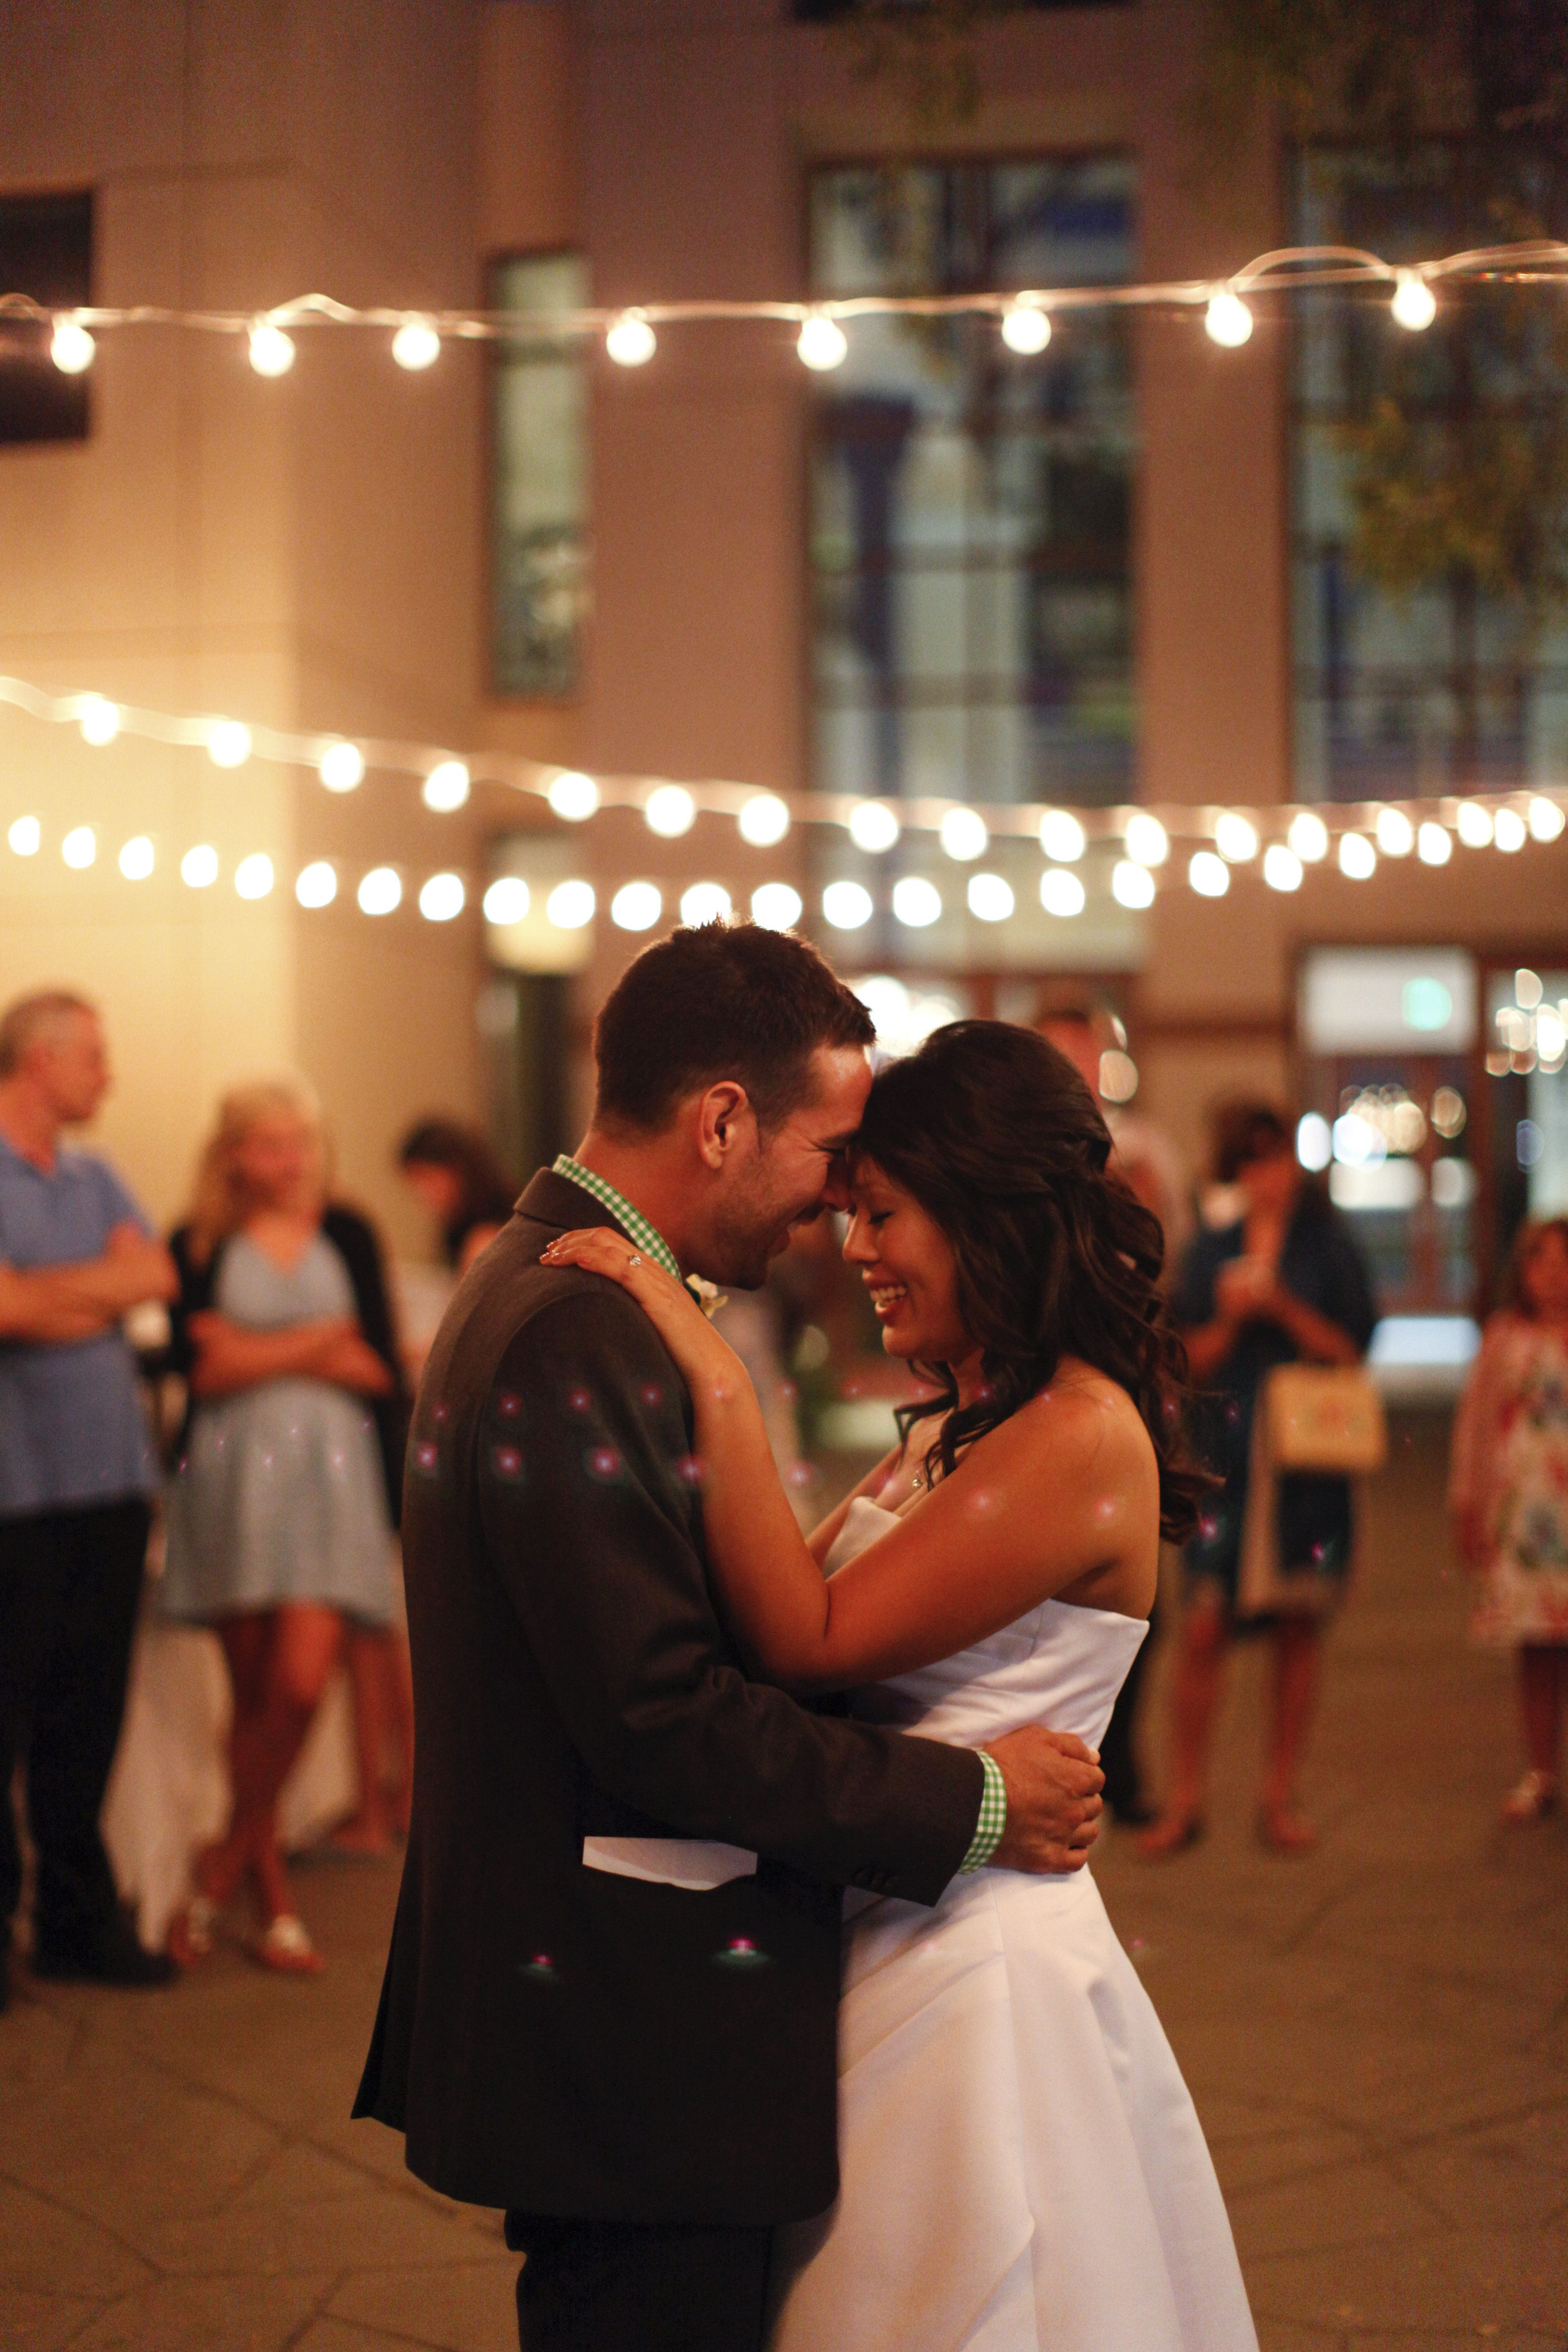 The 50 Most Popular First Dance Songs According To Spotify